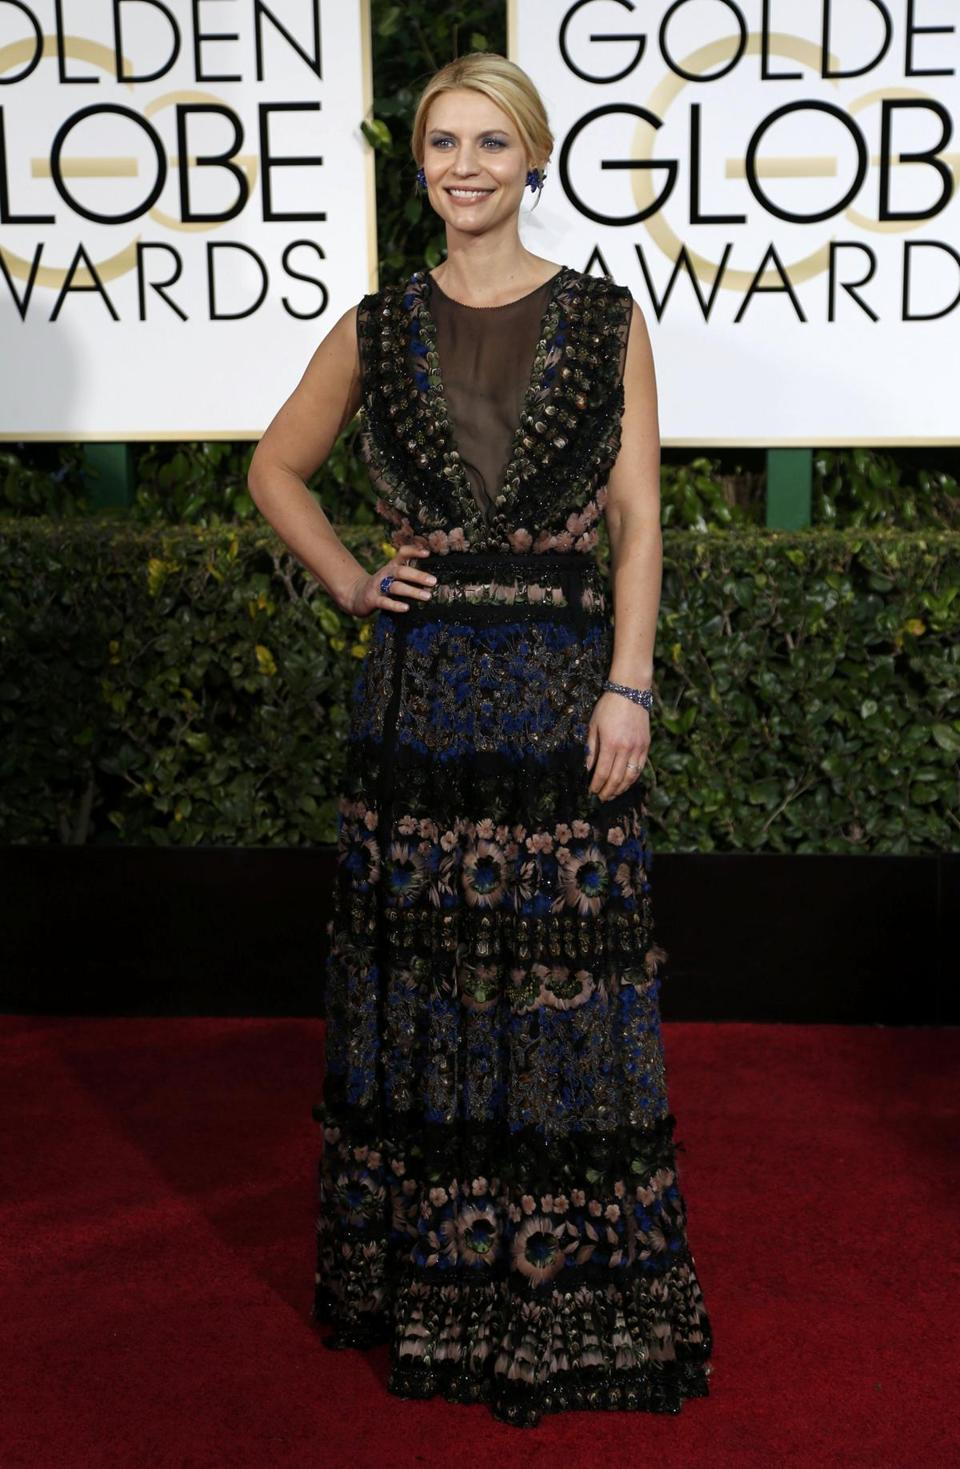 On Globes' red carpet, Hollywood lets it shine